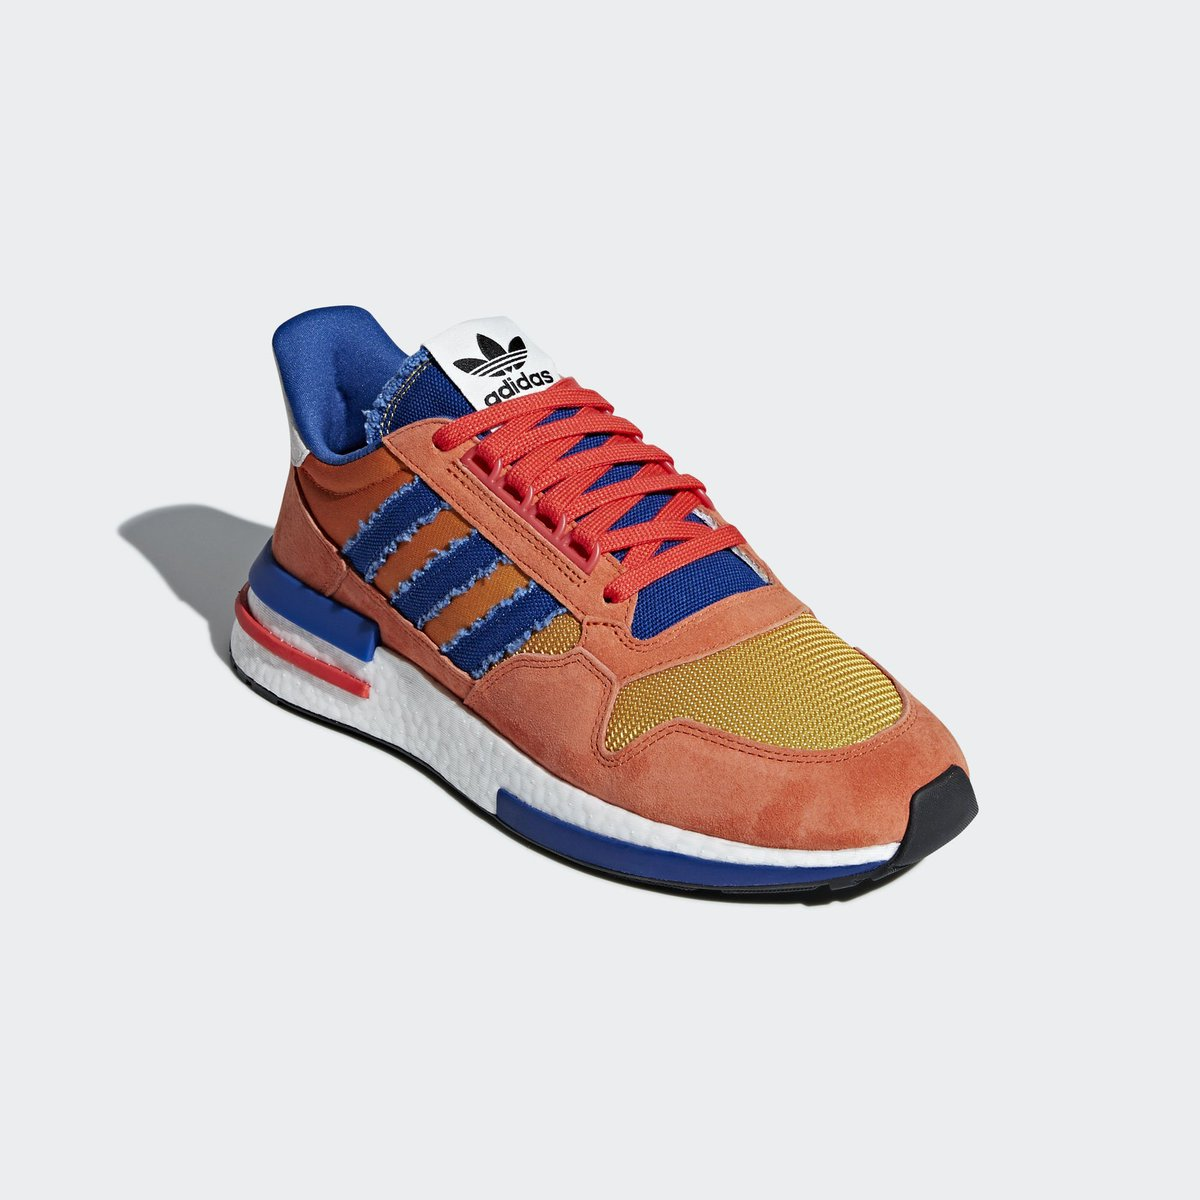 f2bee9a27b5e5e Coming soon on  adidas US. Dragon Ball Z x adidas ZX 500 RM. Releasing  Saturday